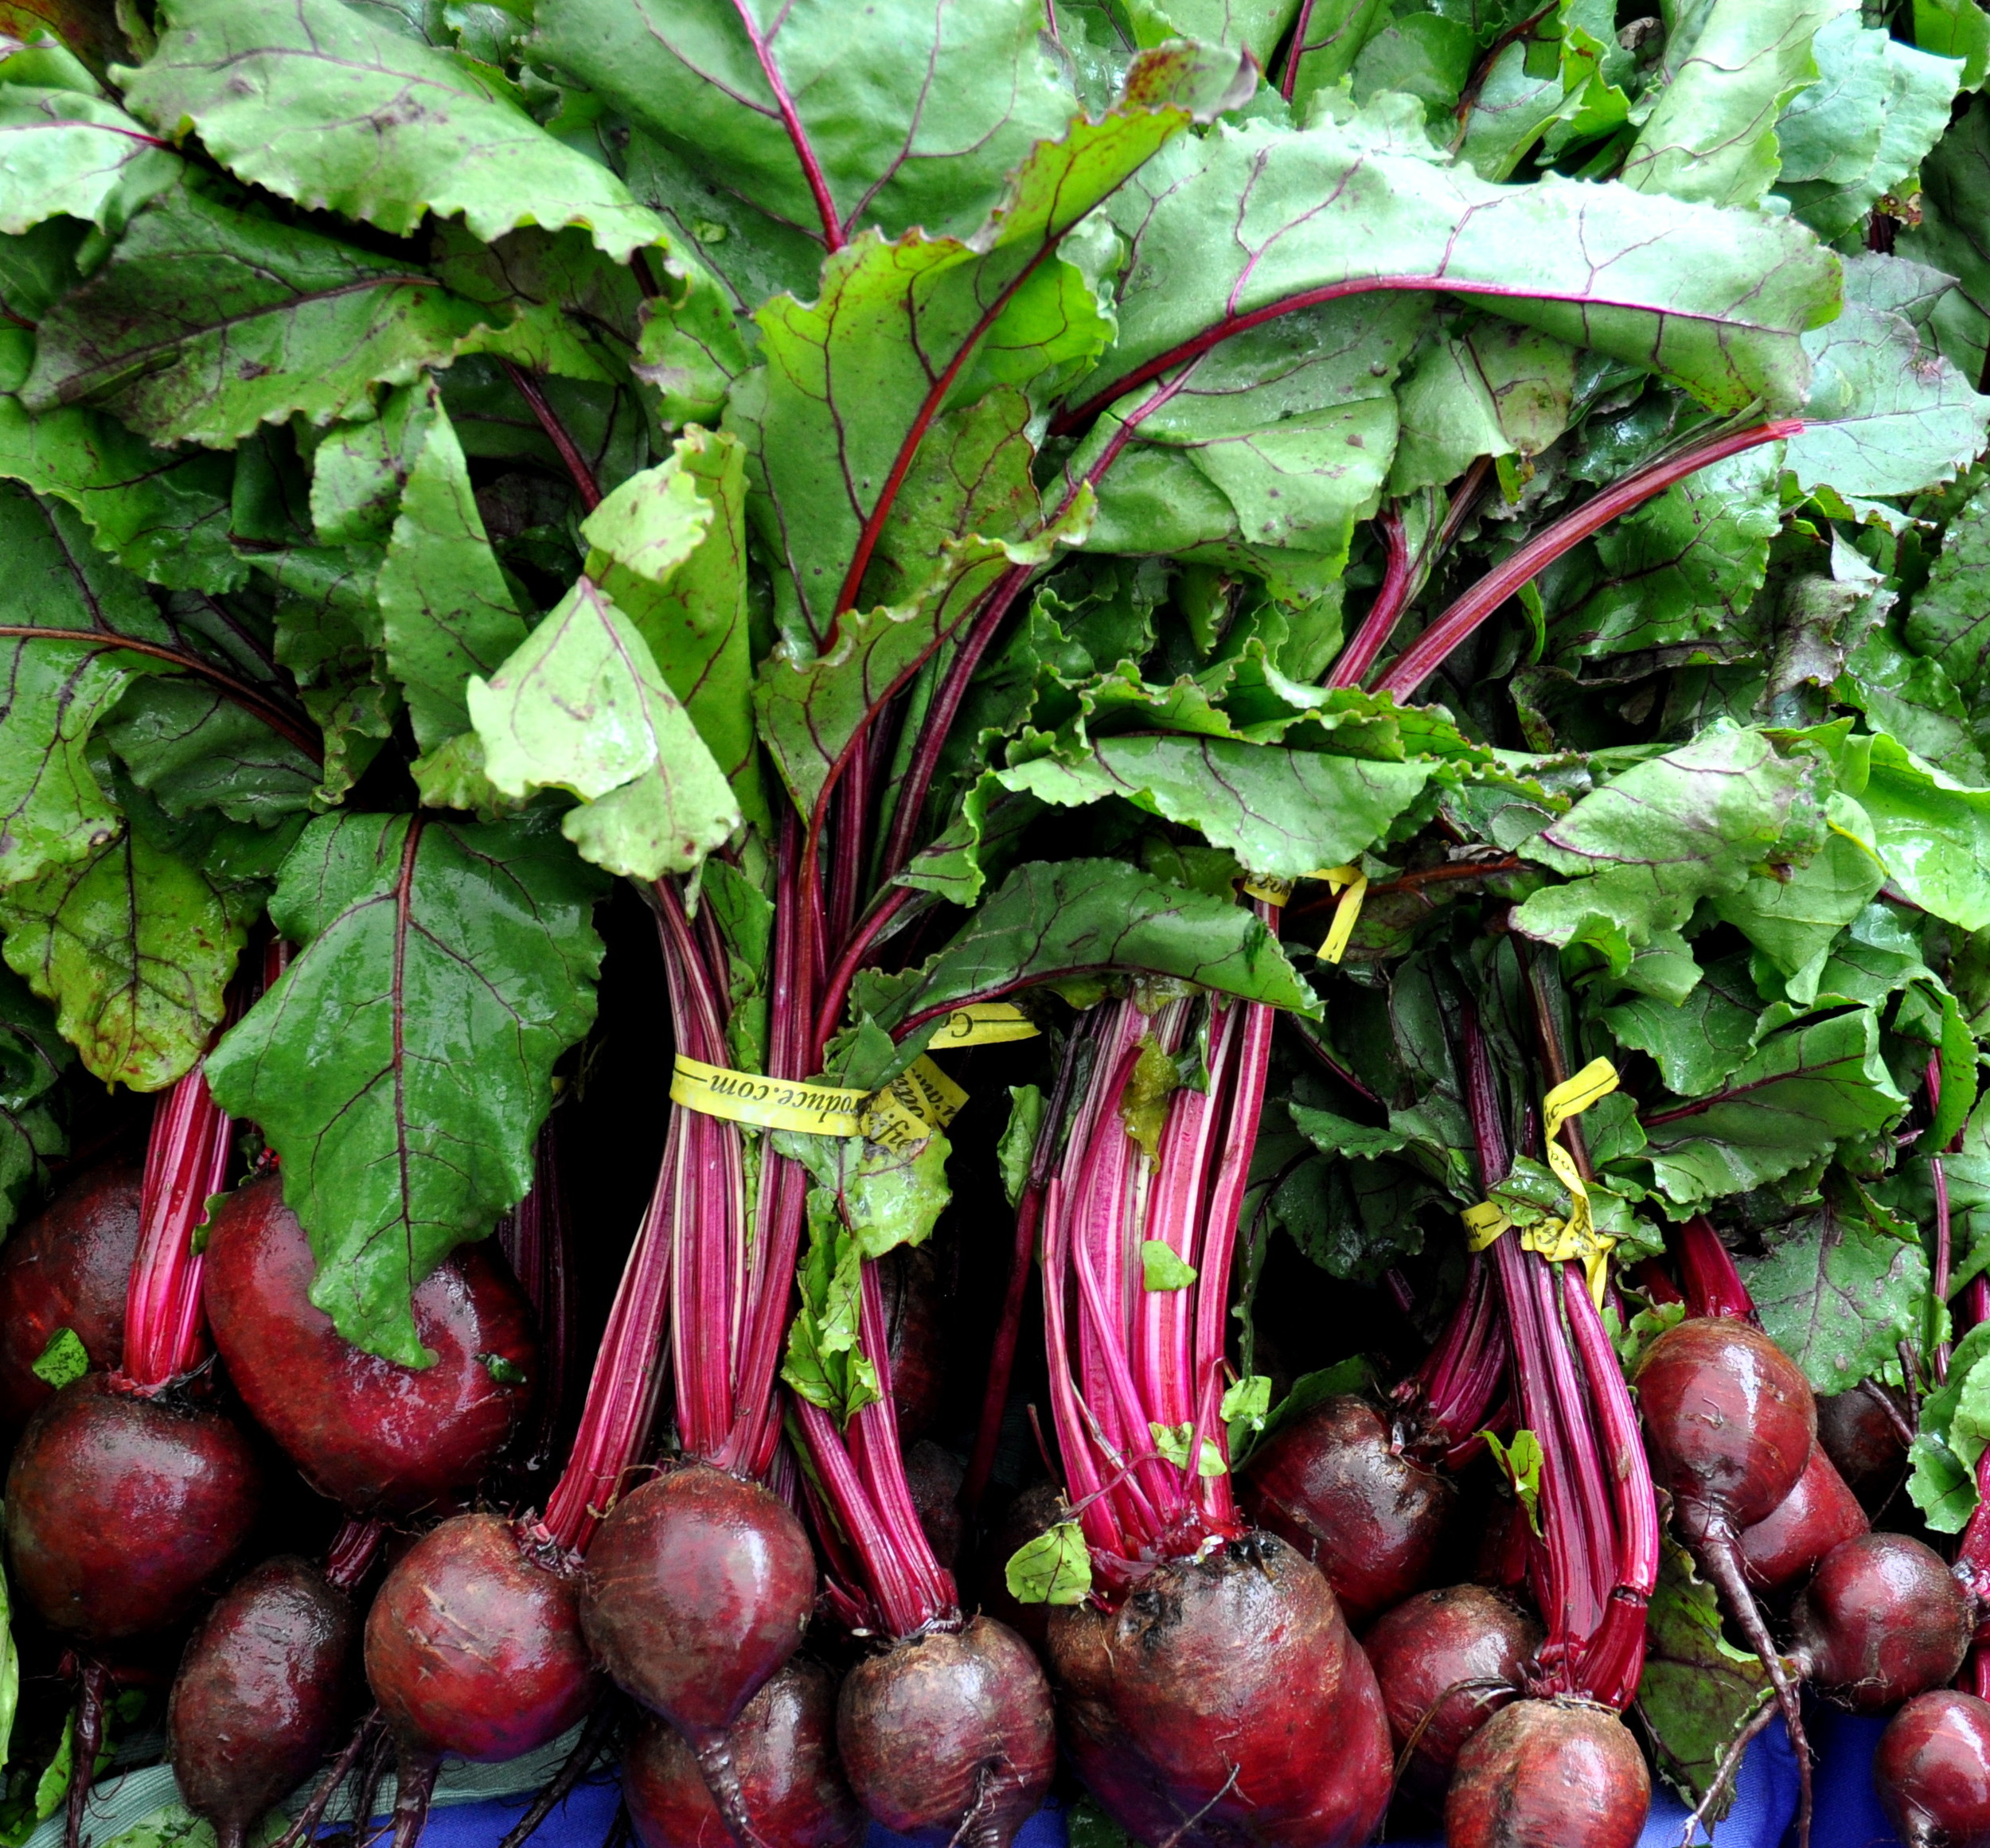 Detroit beets from Nash's Organic Farm. Photo copyright 2014 by Zachary D. Lyons.